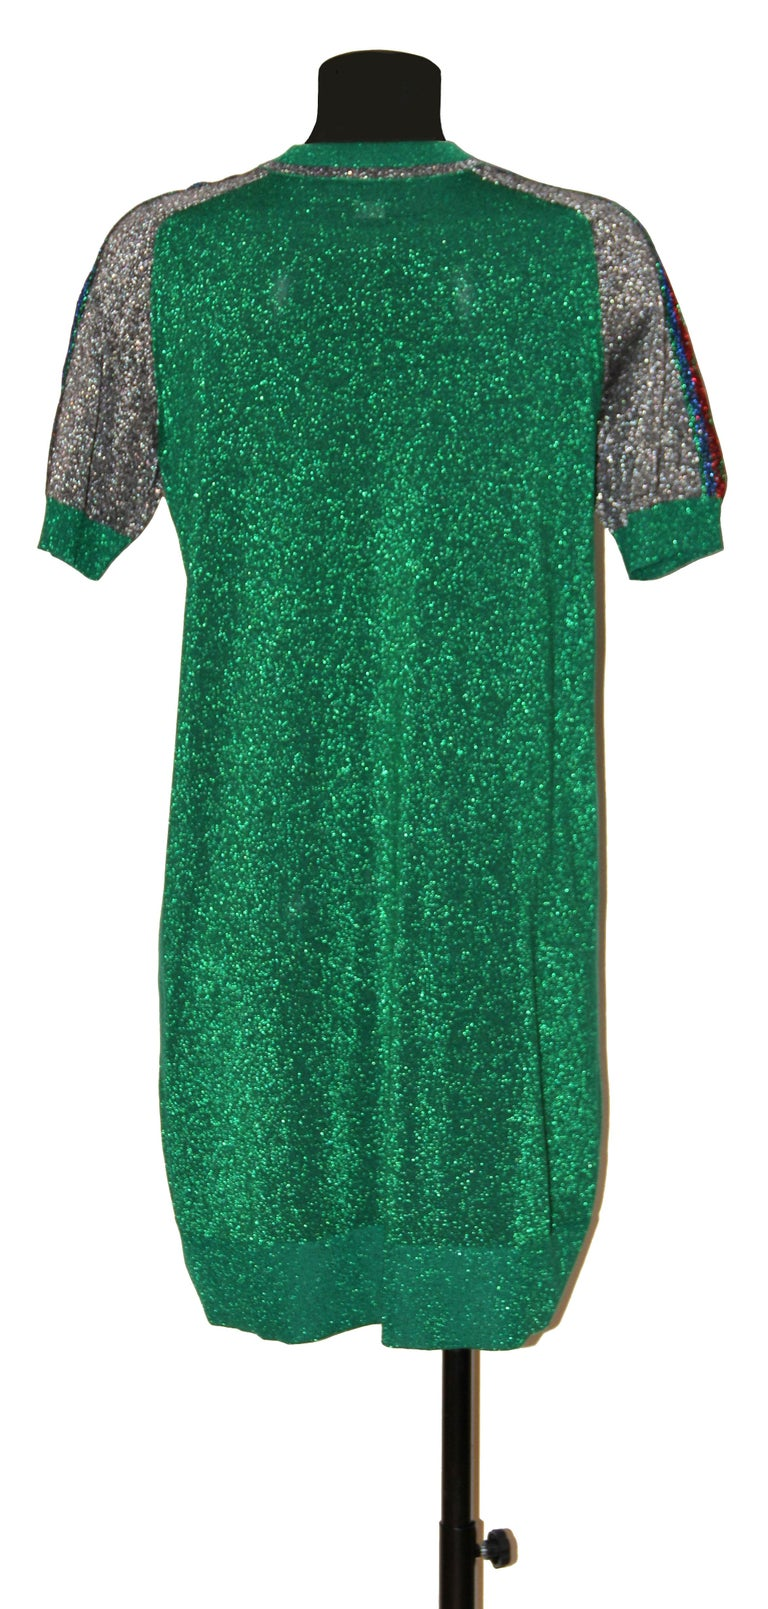 This pre-owned but new green metallic dress has a sporty chic look ! It features the red and green Gucci Ruabn stripe and logo motifs down the shoulders.  It has a round neck, short sleeves and is cut for a knee-length T-shirt silhouette.  Fabric: